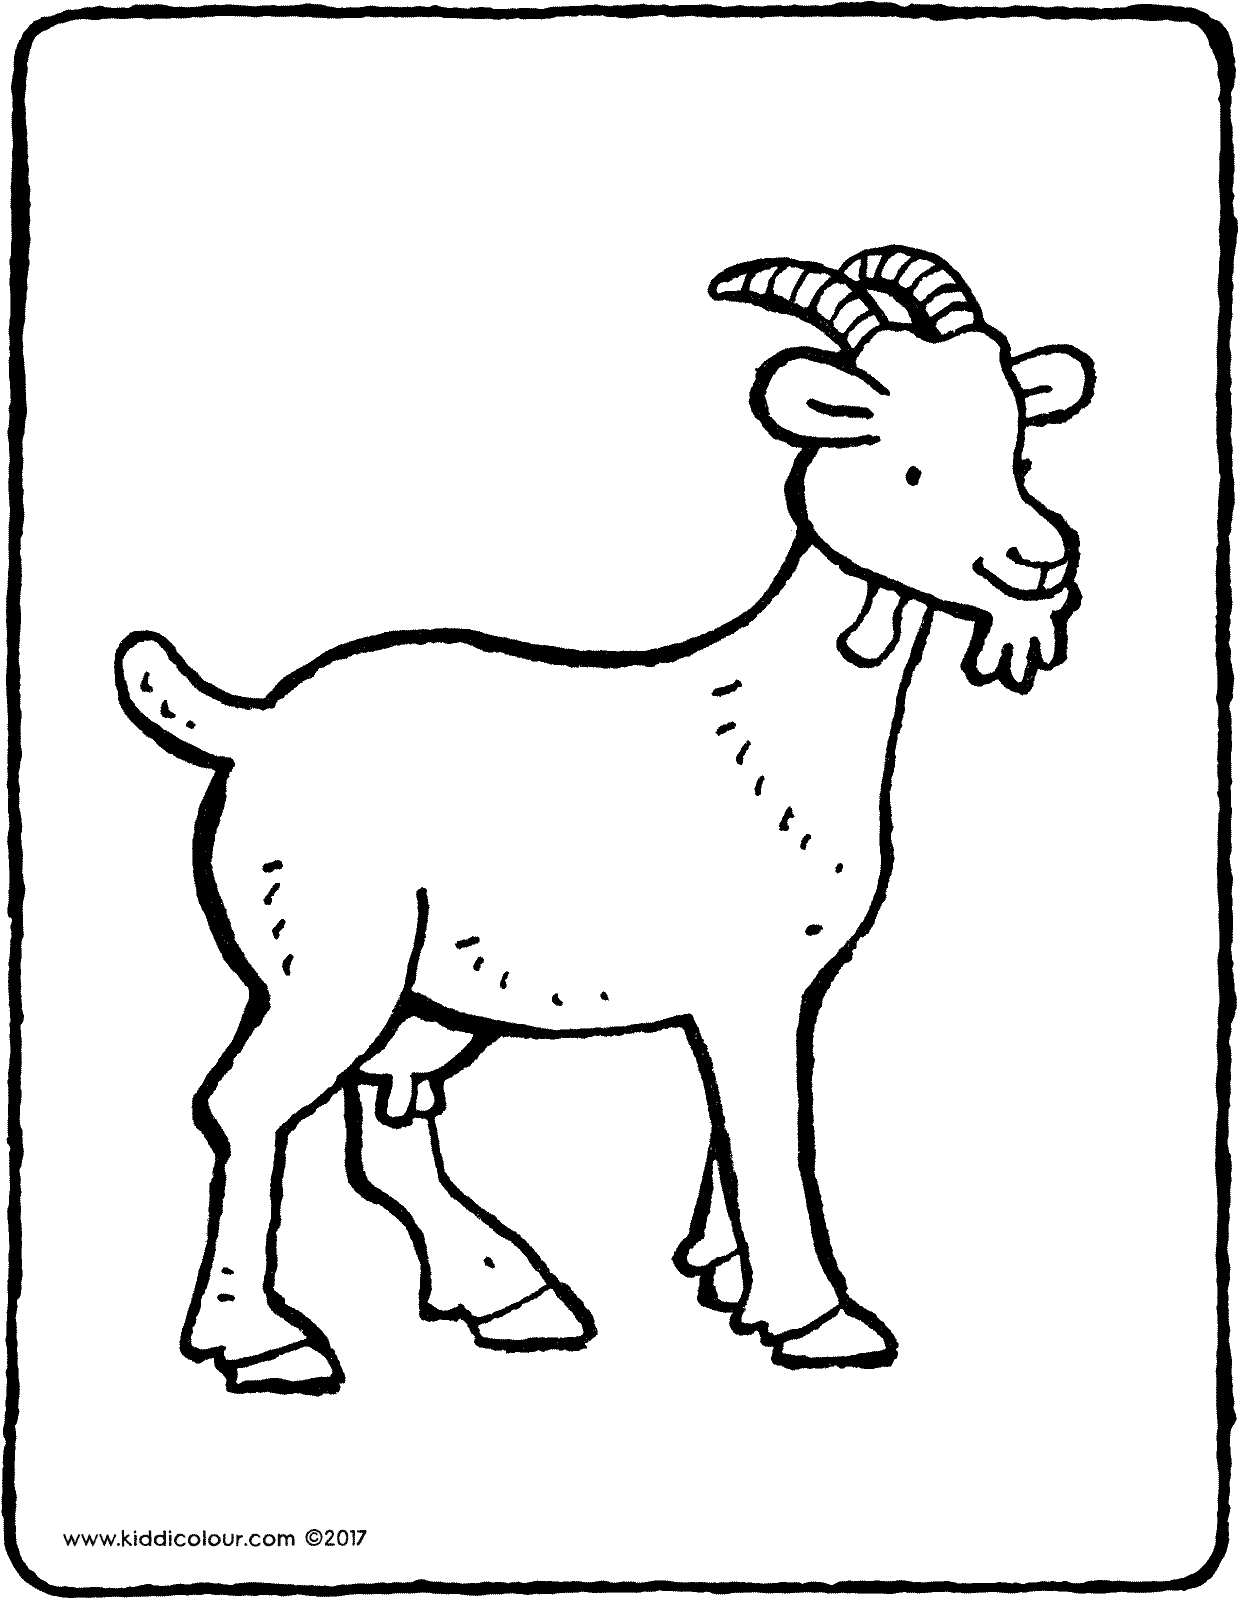 goat colouring picture coloring page goat a symbol of the year colouring picture goat